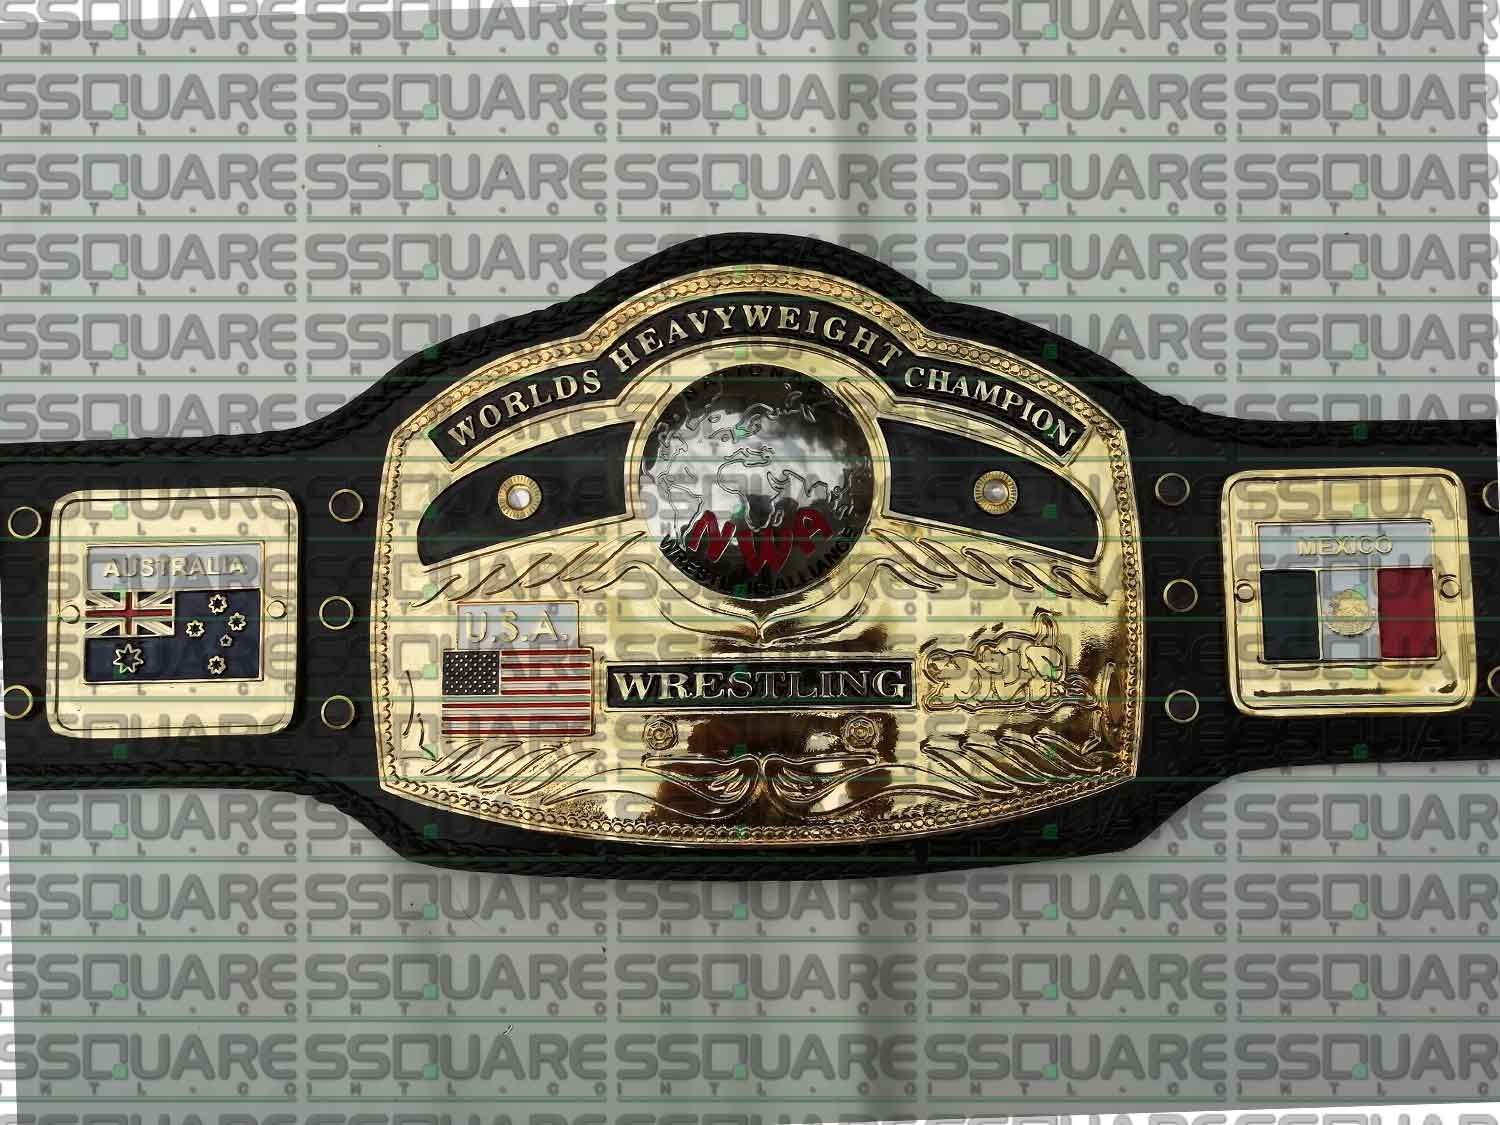 NWA Domed Globe Heavyweight Wrestling Champion replica belt (4mm version)